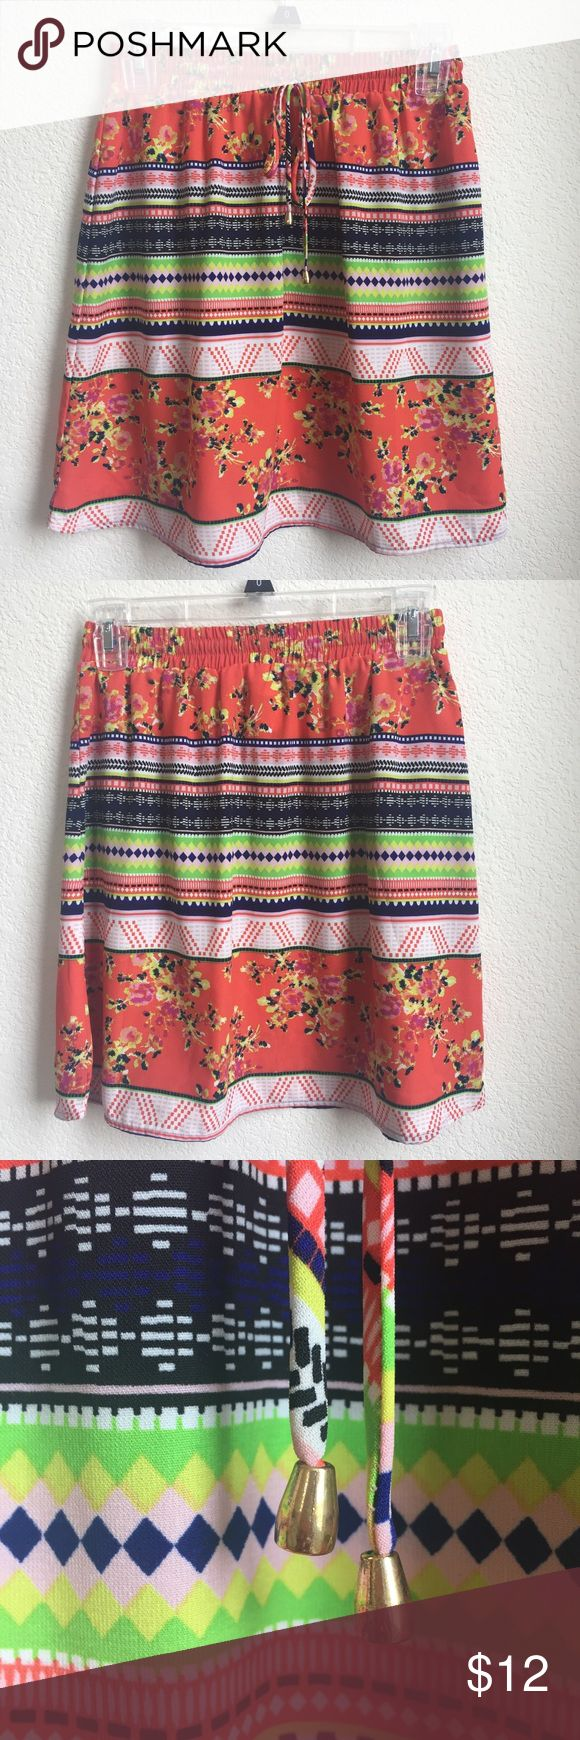 Xhiliration Bright and Colorful Tribal Print Skirt Fantastic, fun, flirty summer item. Would go perfect with strappy sandals. Drawstring waste with gold ends. Has a little wear on the gold ends of the drawstring, pictured. Worn only a few times. From Target. Xhilaration Skirts